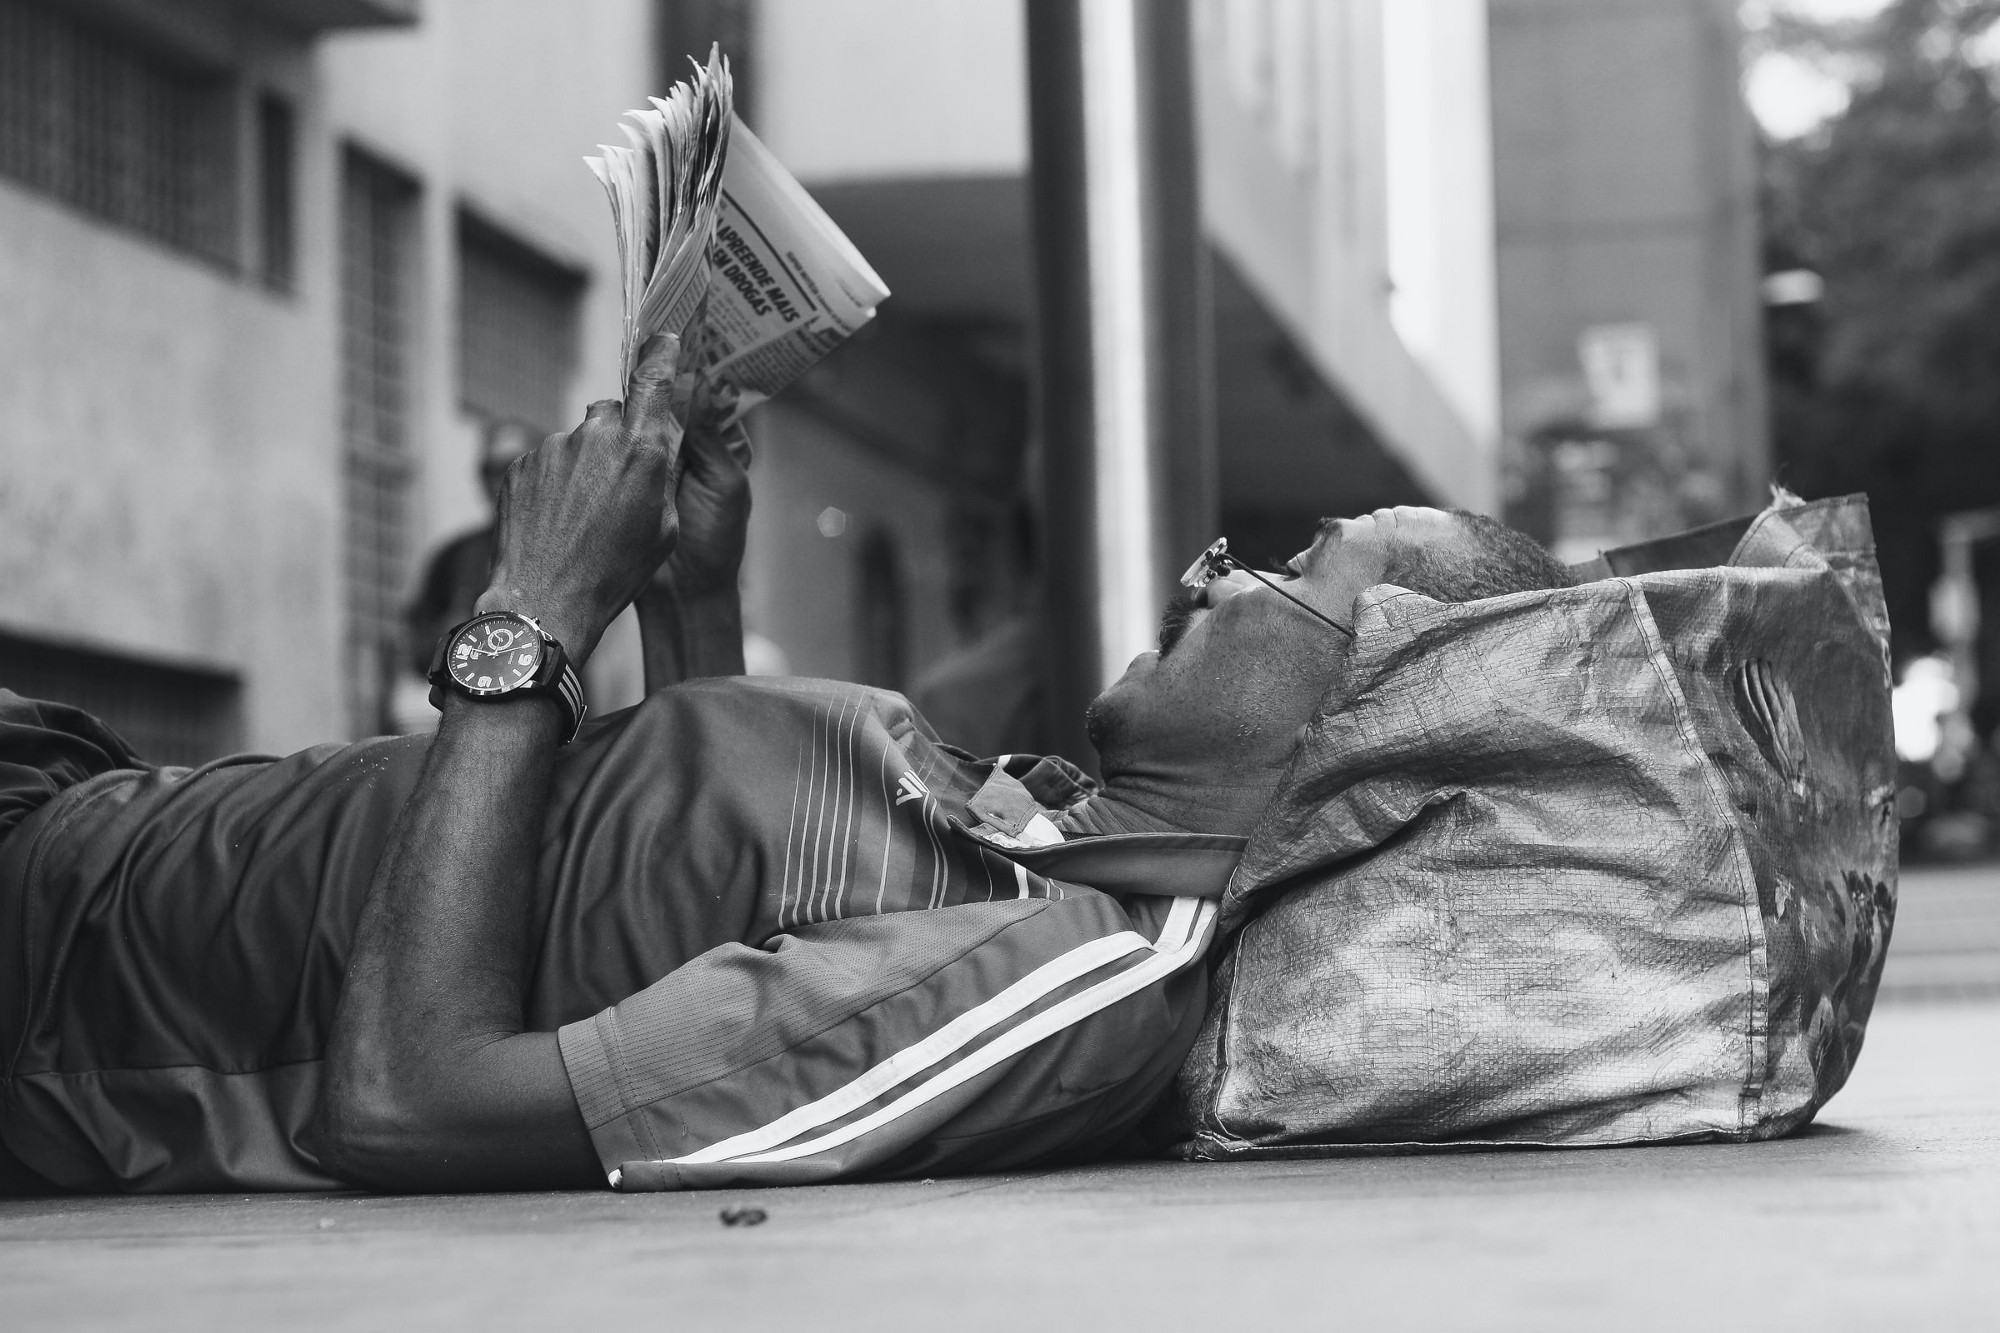 Man lying on sidewalk reading newspaper.